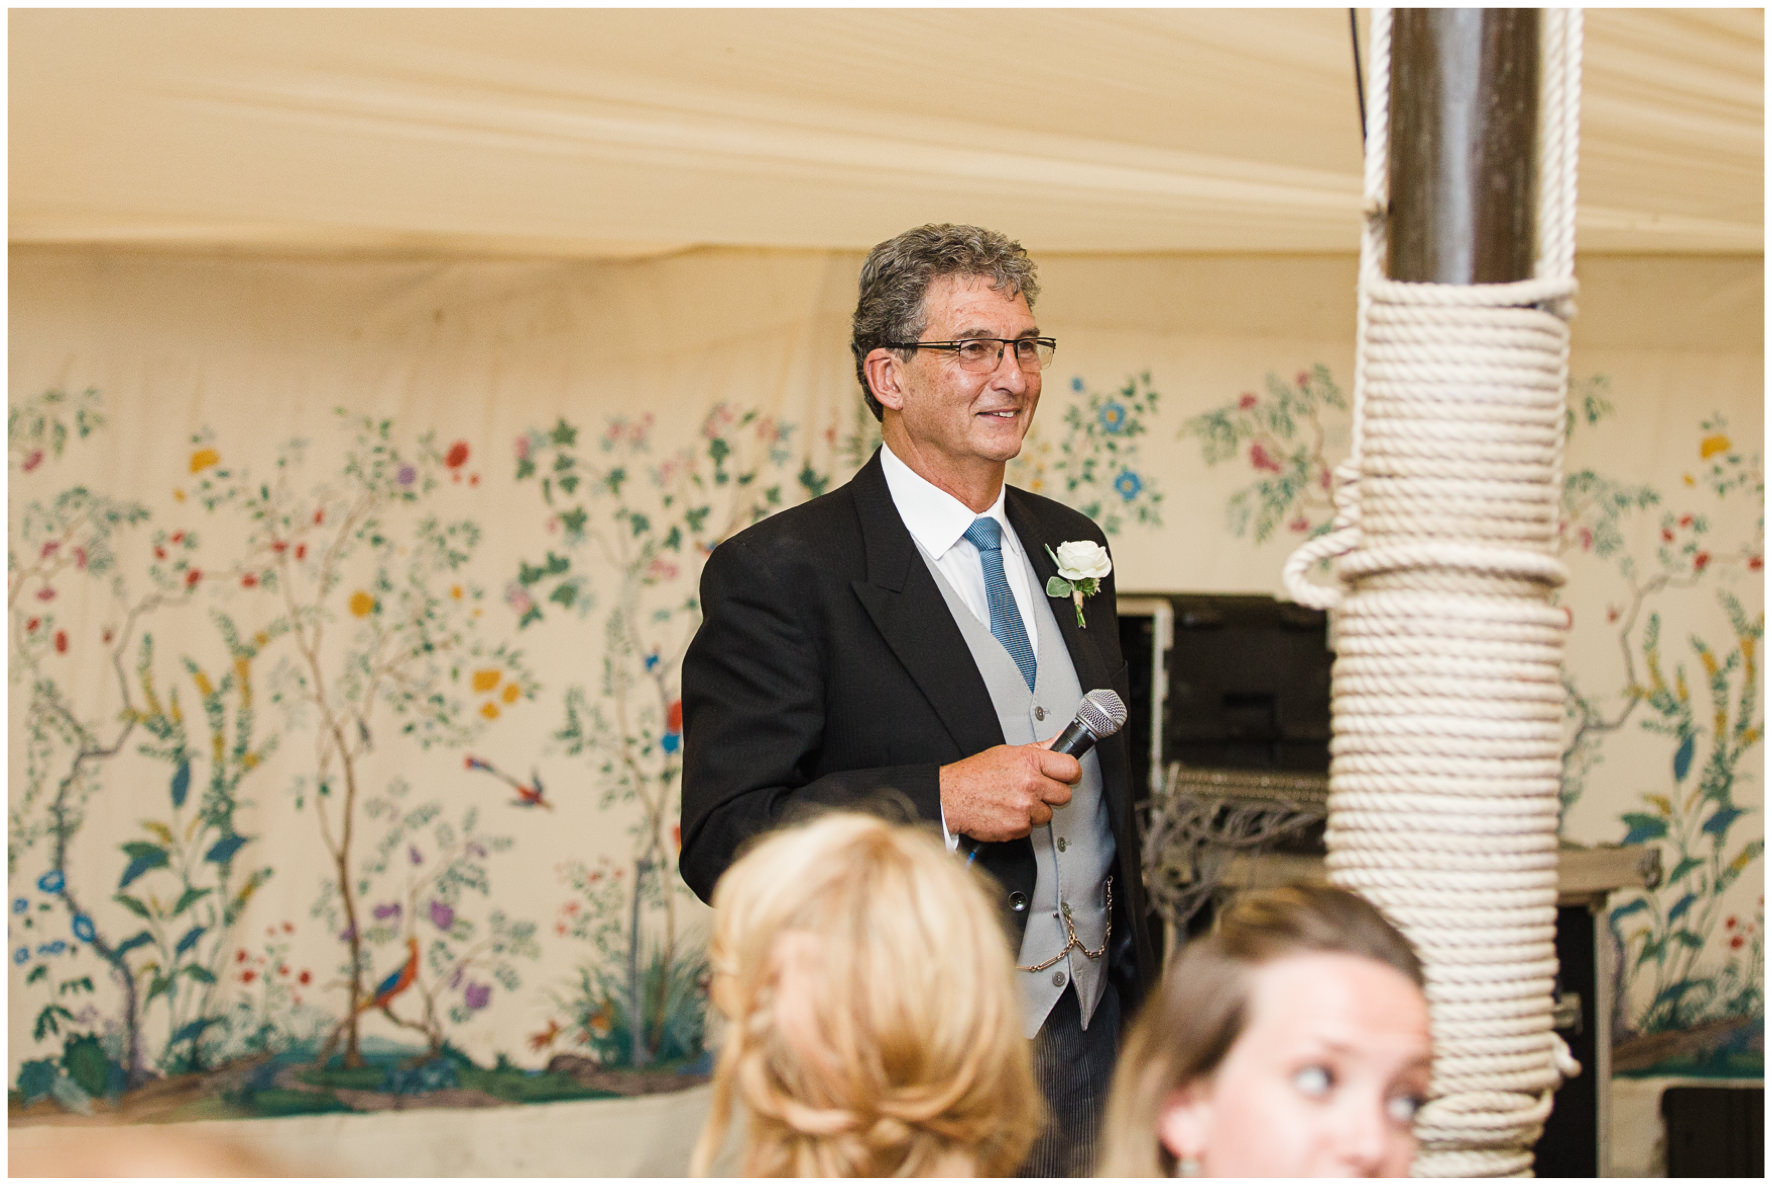 Lucy Davenport Photography, Cornwell Manor, wedding venue, Oxfordshire, Cotswold wedding, marquee wedding, marquee, wedding breakfast, speeches, father of the bride